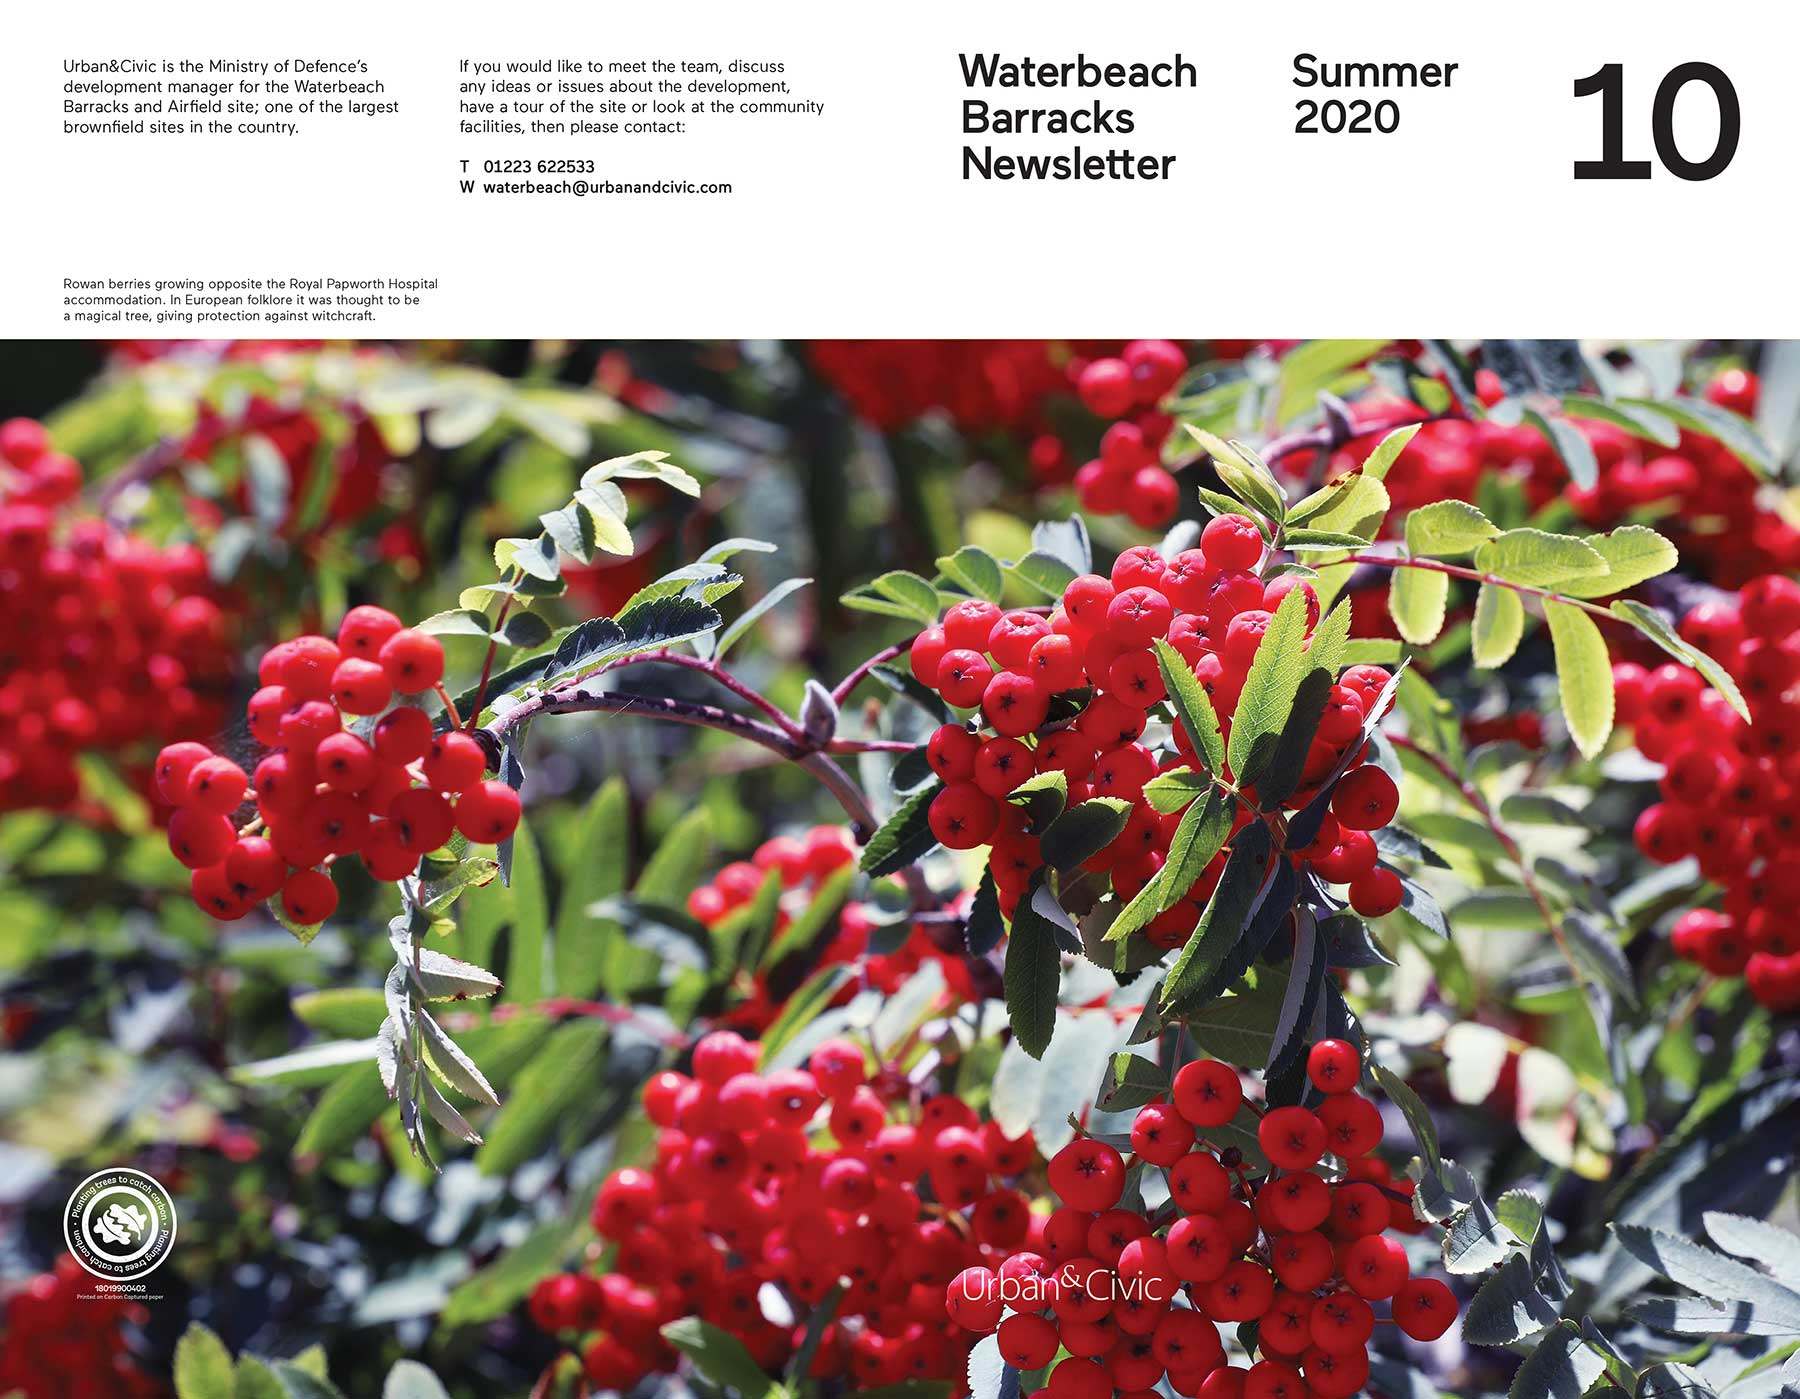 Waterbeach barracks summer newsletter cover